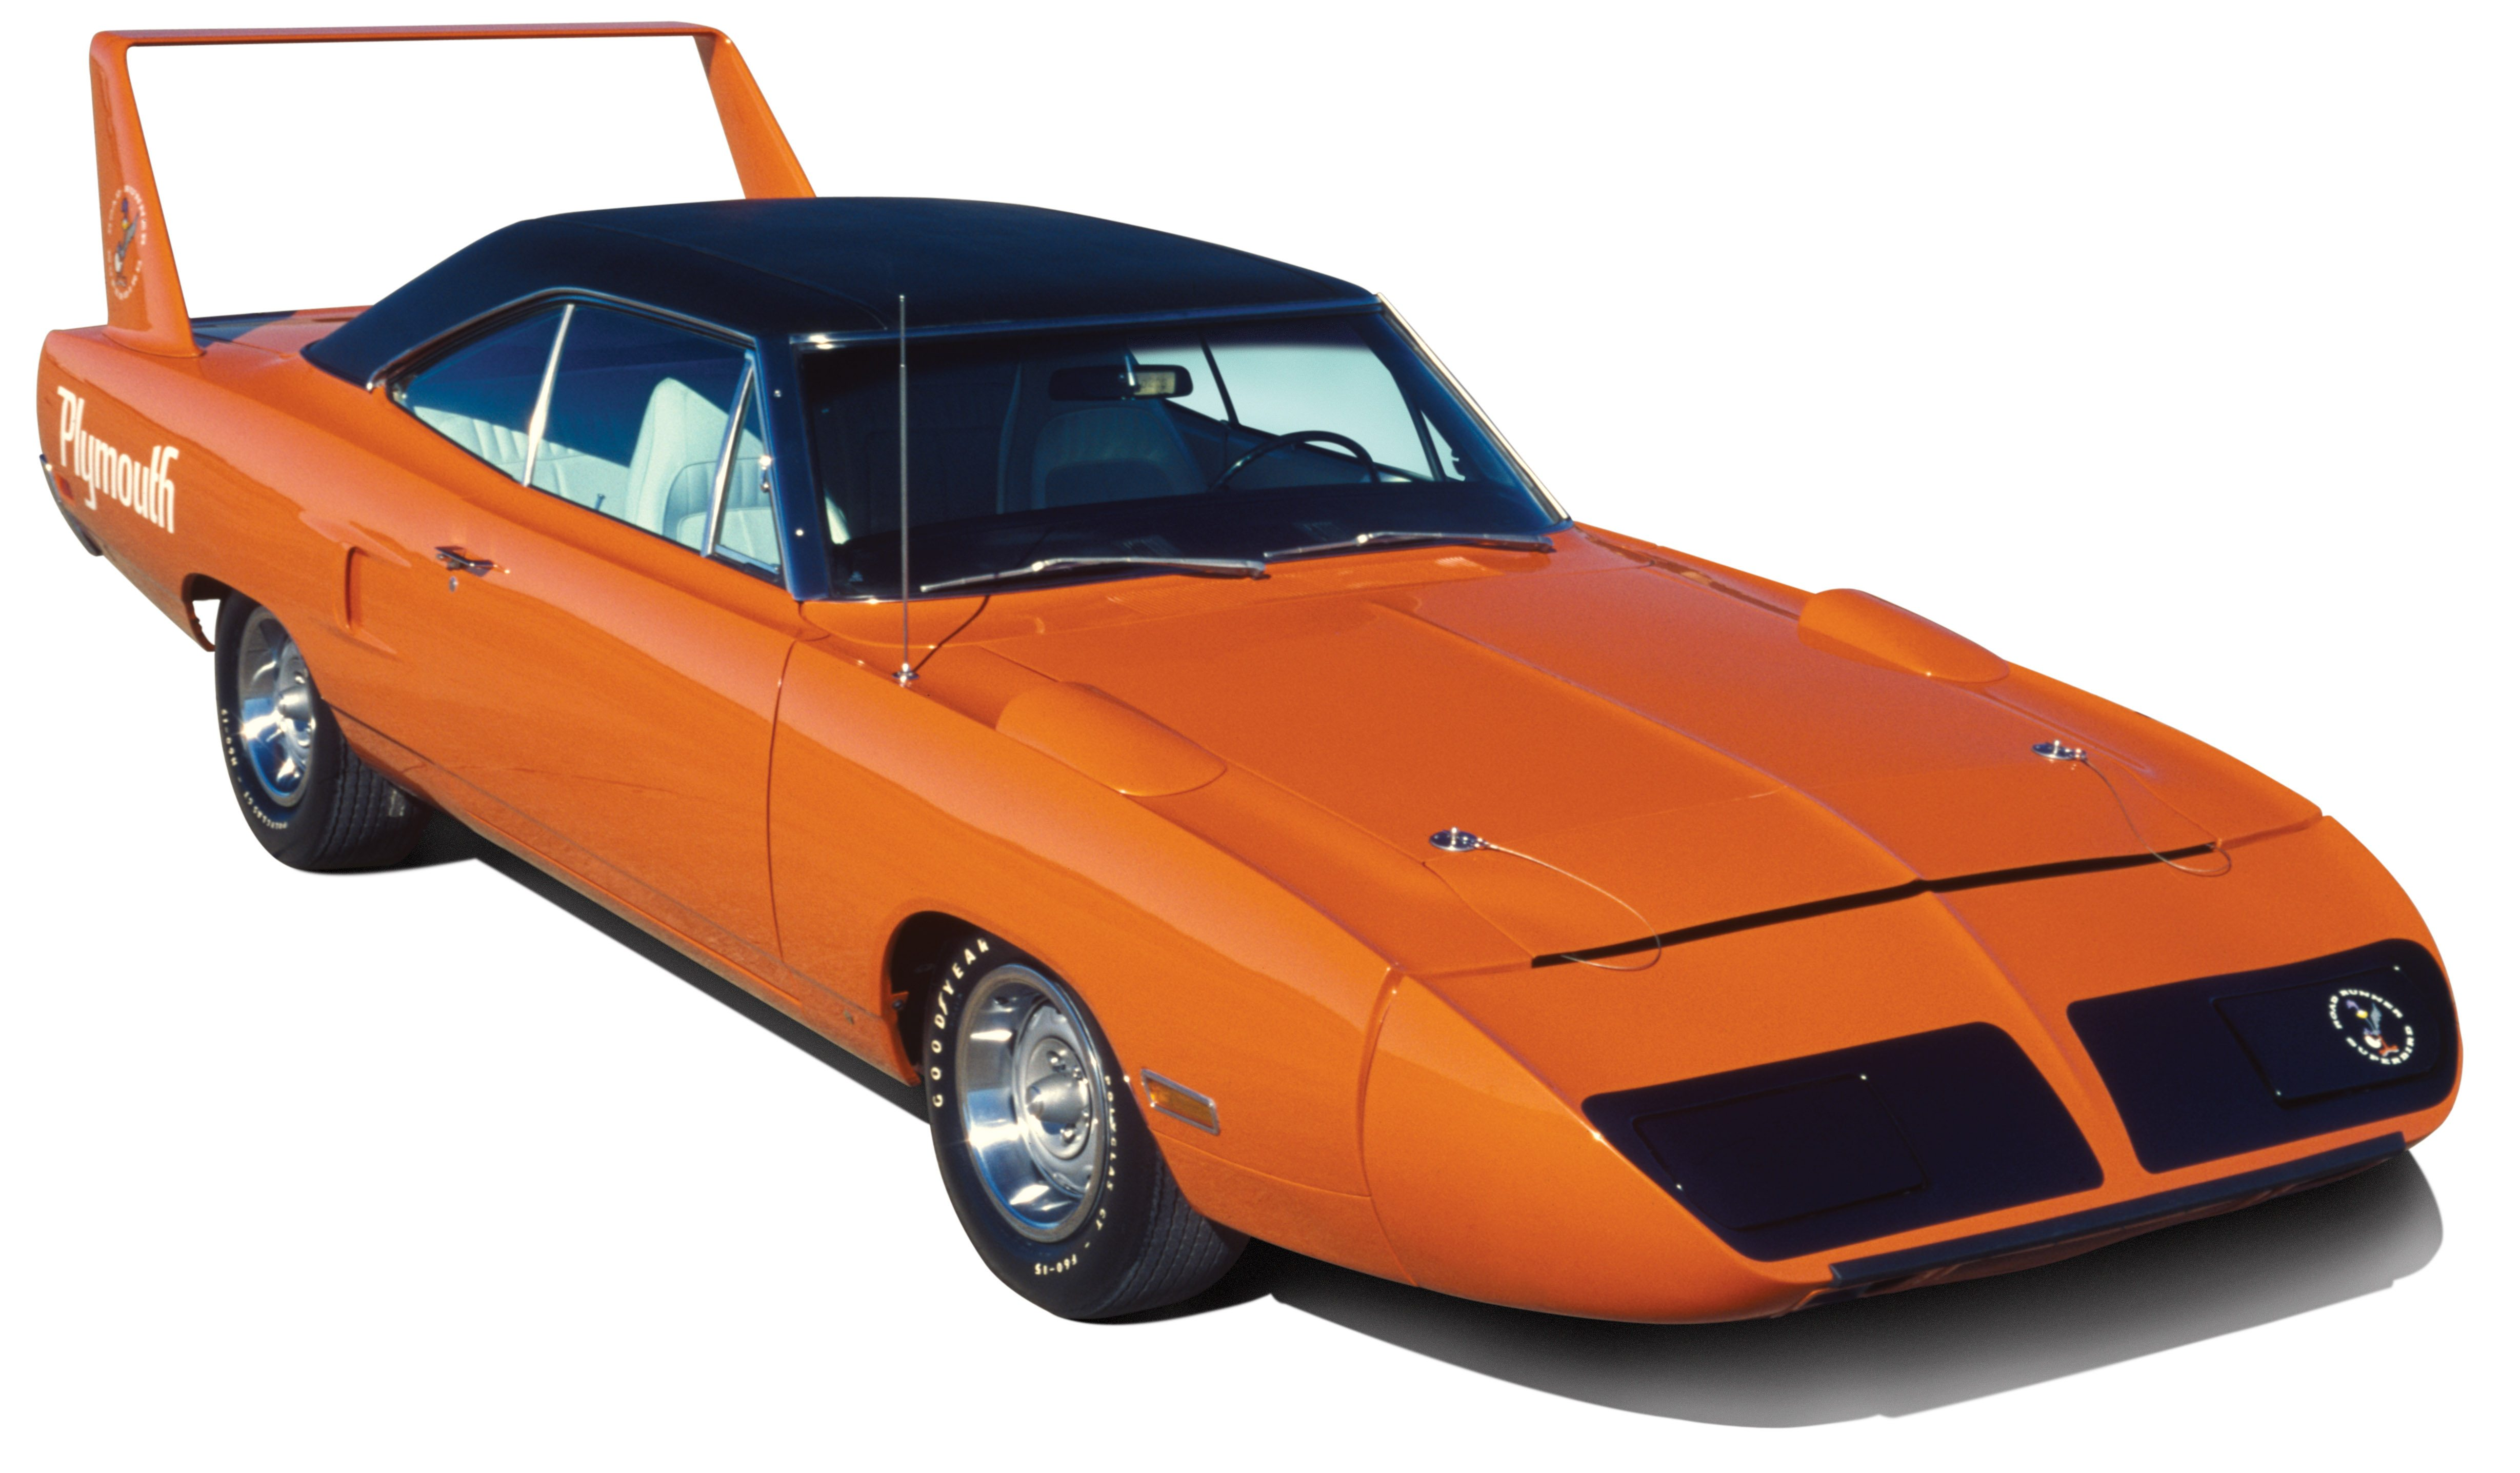 "Our feature car was originally delivered to a Wisconsin dealership where it probably served as a demo for a short time before its nosecone was smashed. The Superbird was placed behind the dealership and then became a parts donor. It lost a few parts before a Minnesota resident bought it and placed the ""winged warrior"" in long-term storage. As a result, the rare Hemi-powered Plymouth accumulated less than 100 miles since new."